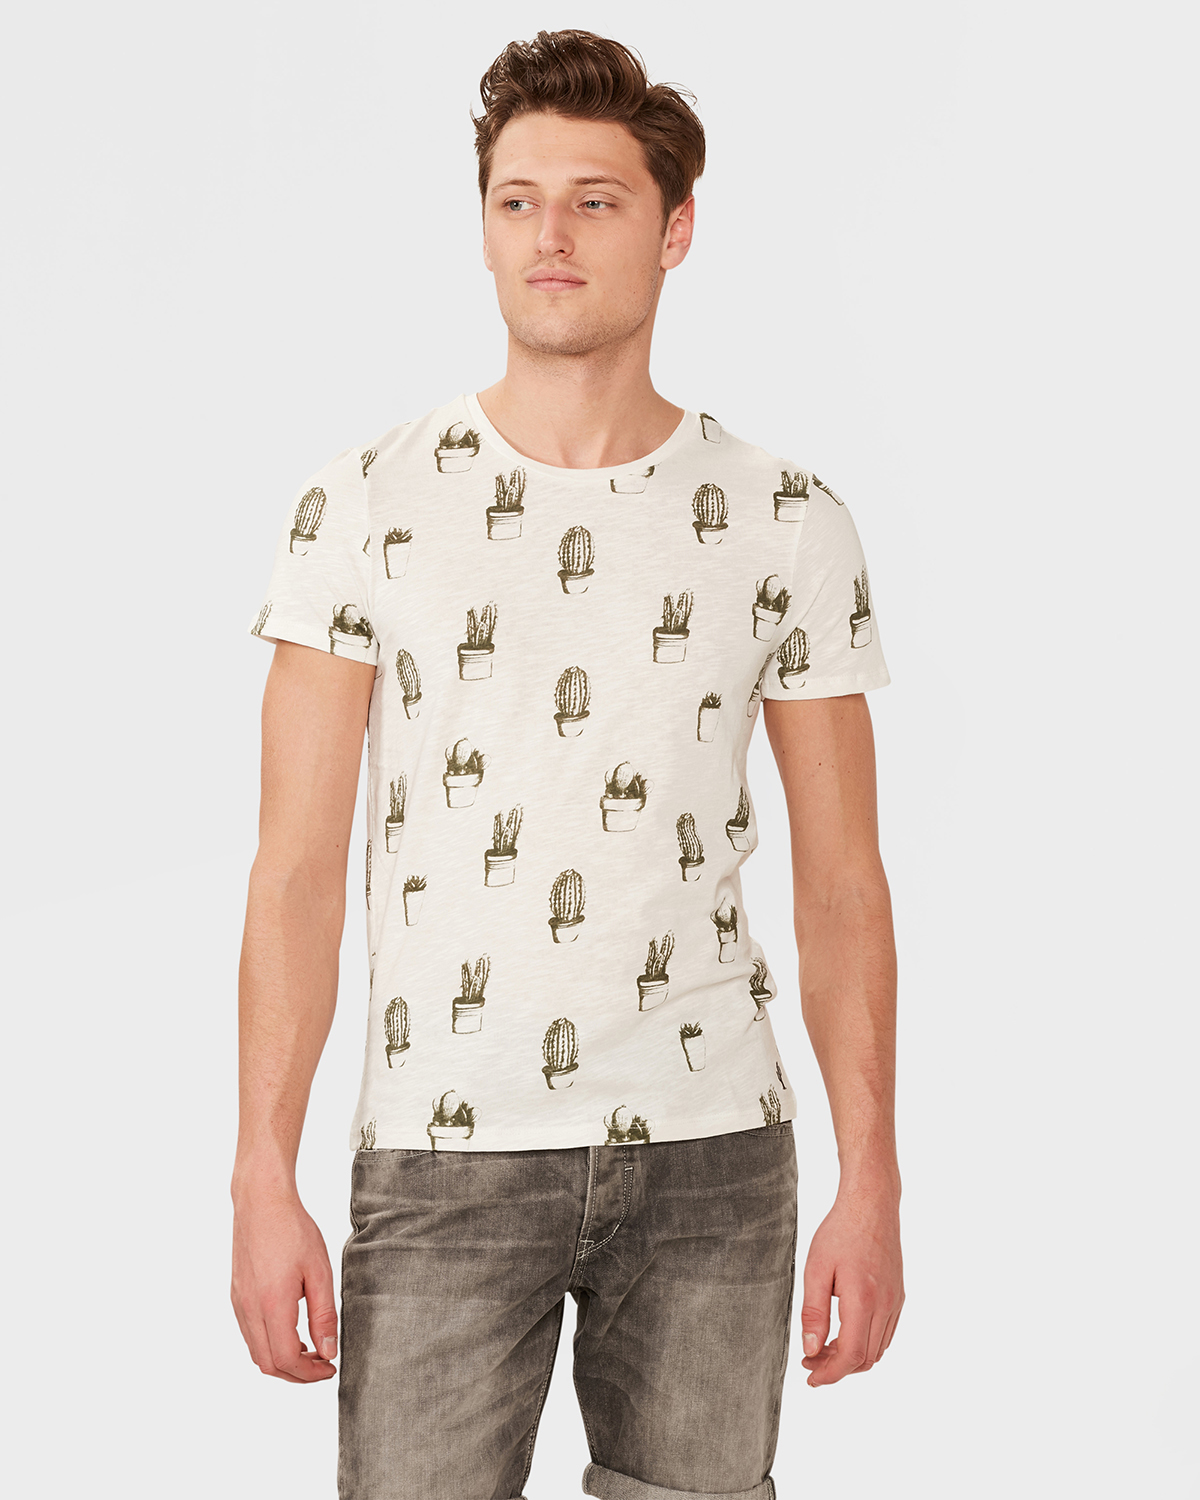 herren t shirt mit kaktus print 79869638 we fashion. Black Bedroom Furniture Sets. Home Design Ideas